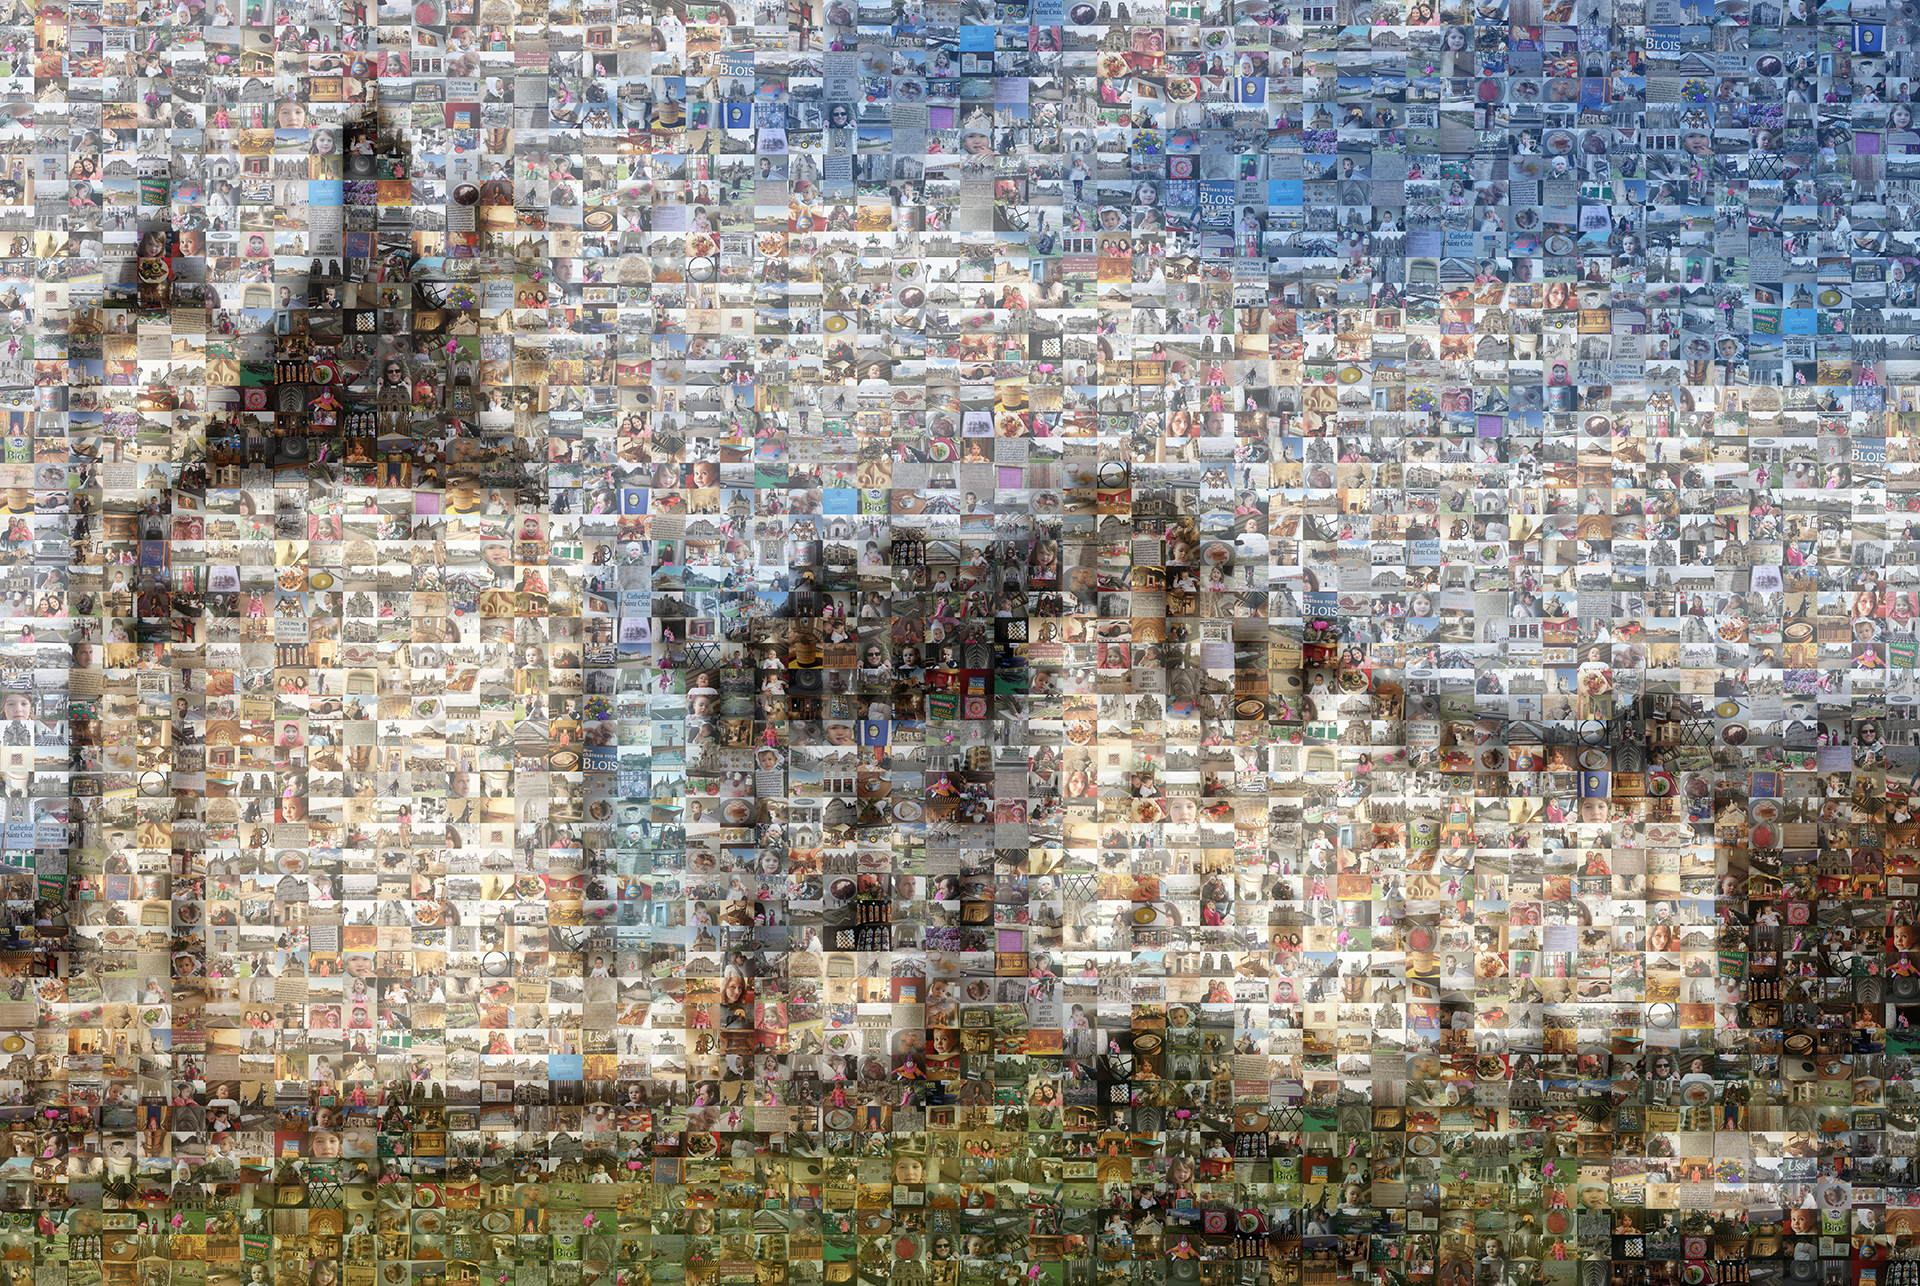 photo mosaic created using 456 family vacation photos